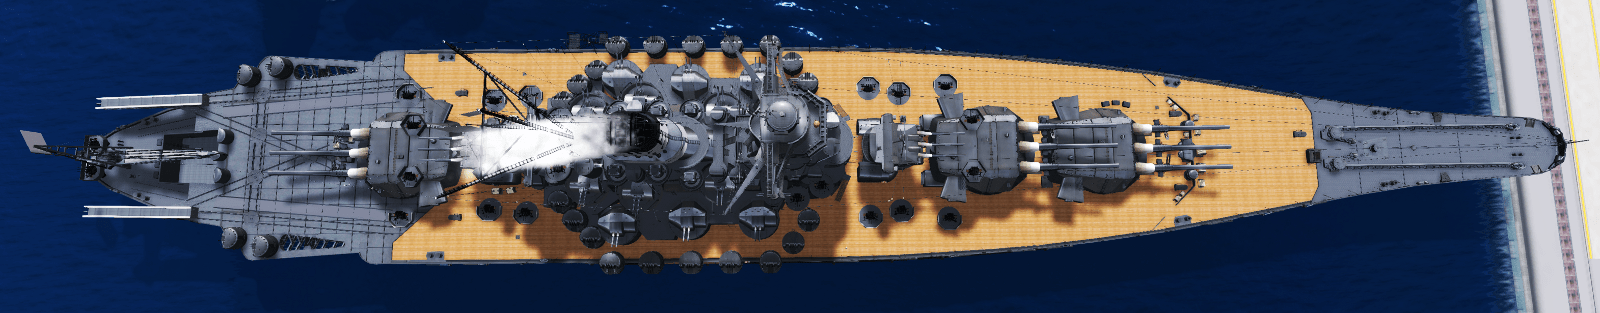 An aerial view of the battleship in SL